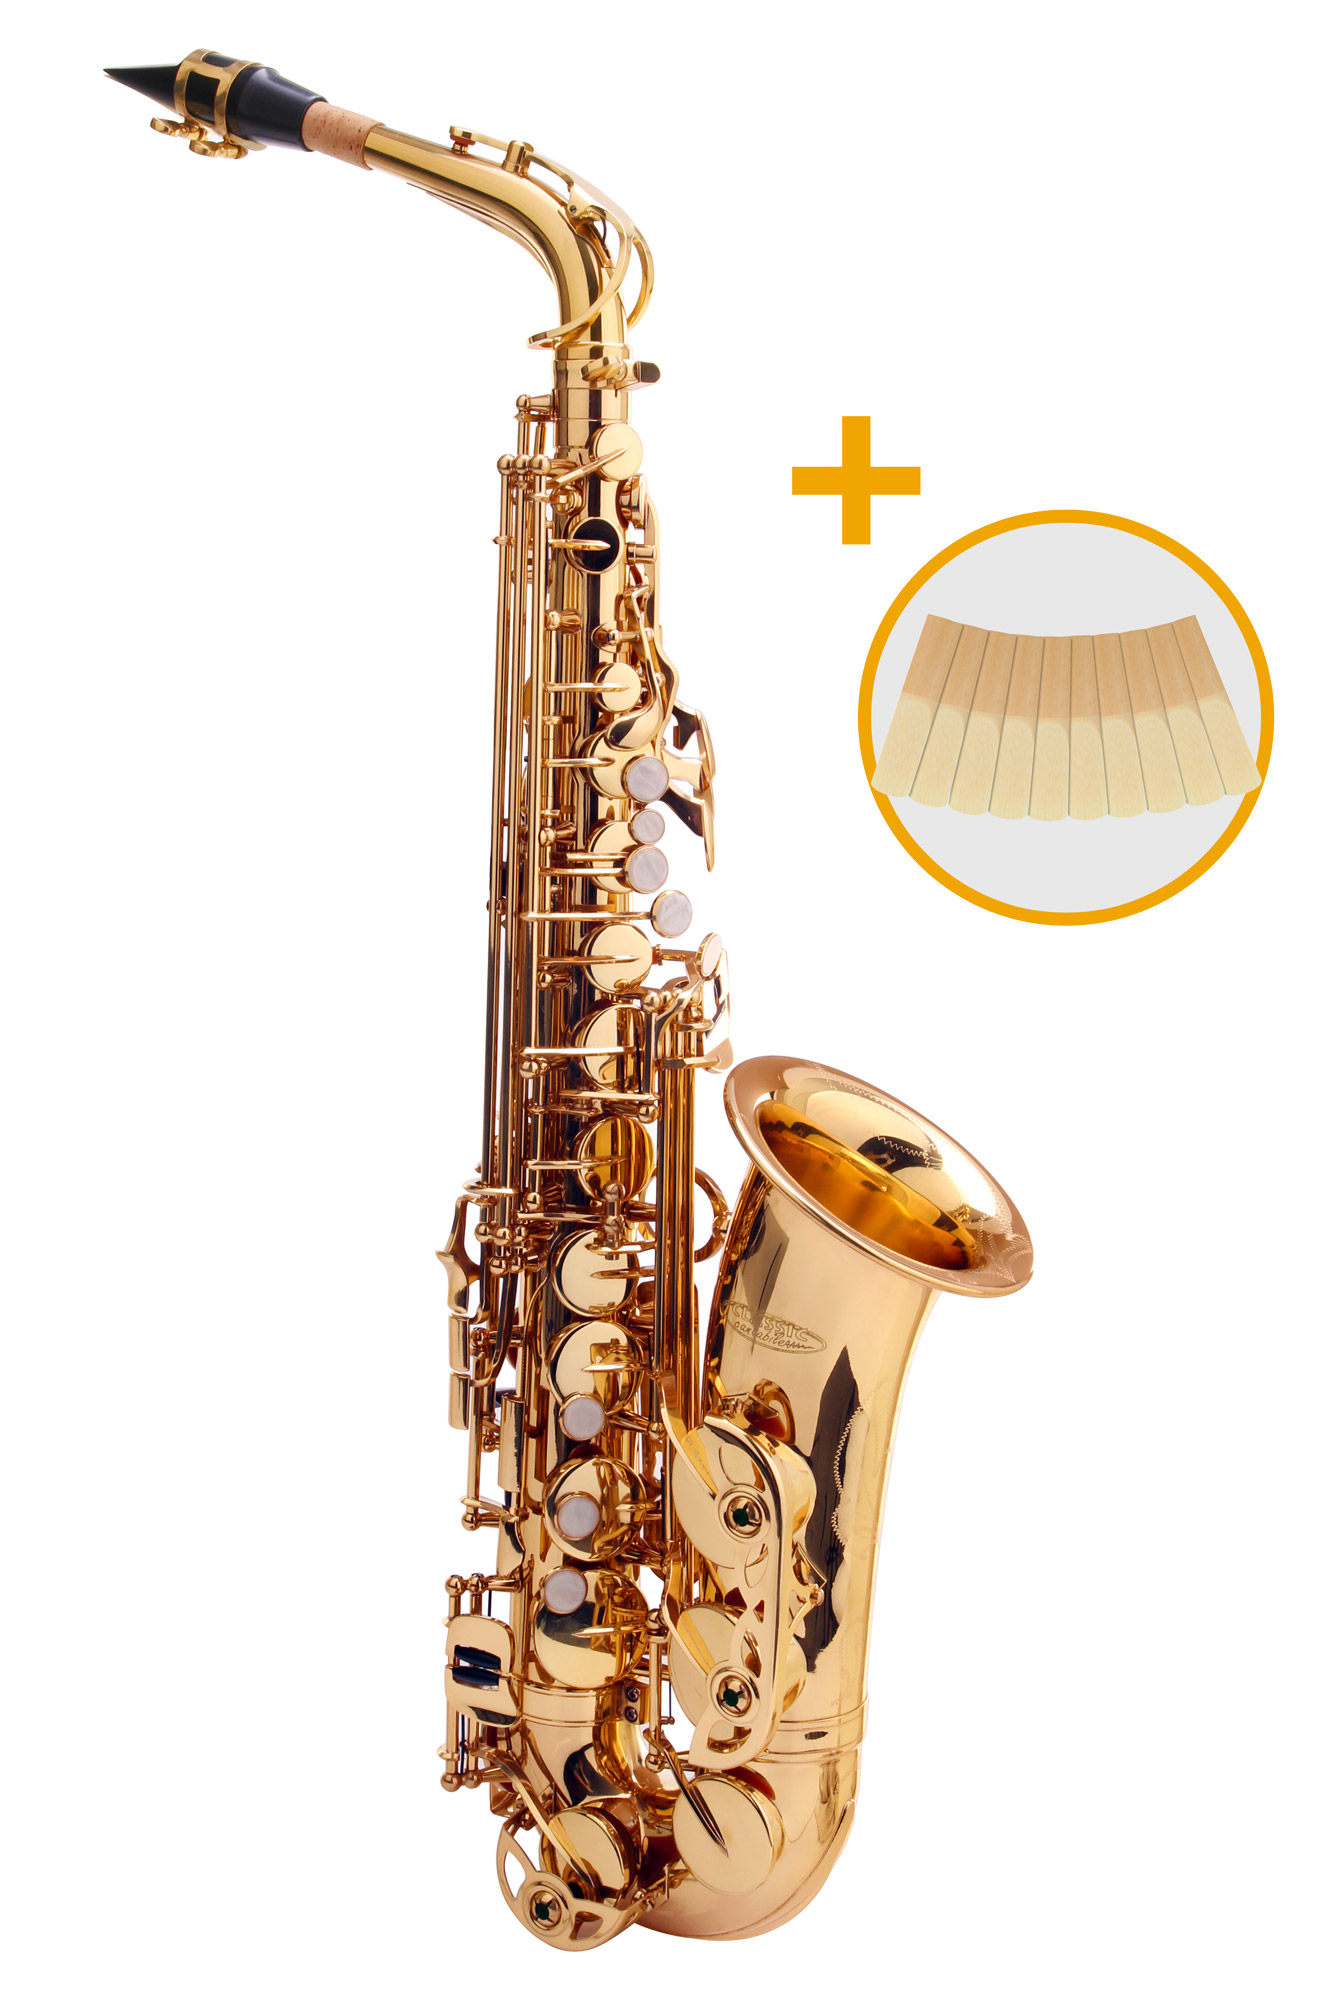 Saxophone - Classic Cantabile Winds AS 450 Es Altsaxophon Set - Onlineshop Musikhaus Kirstein